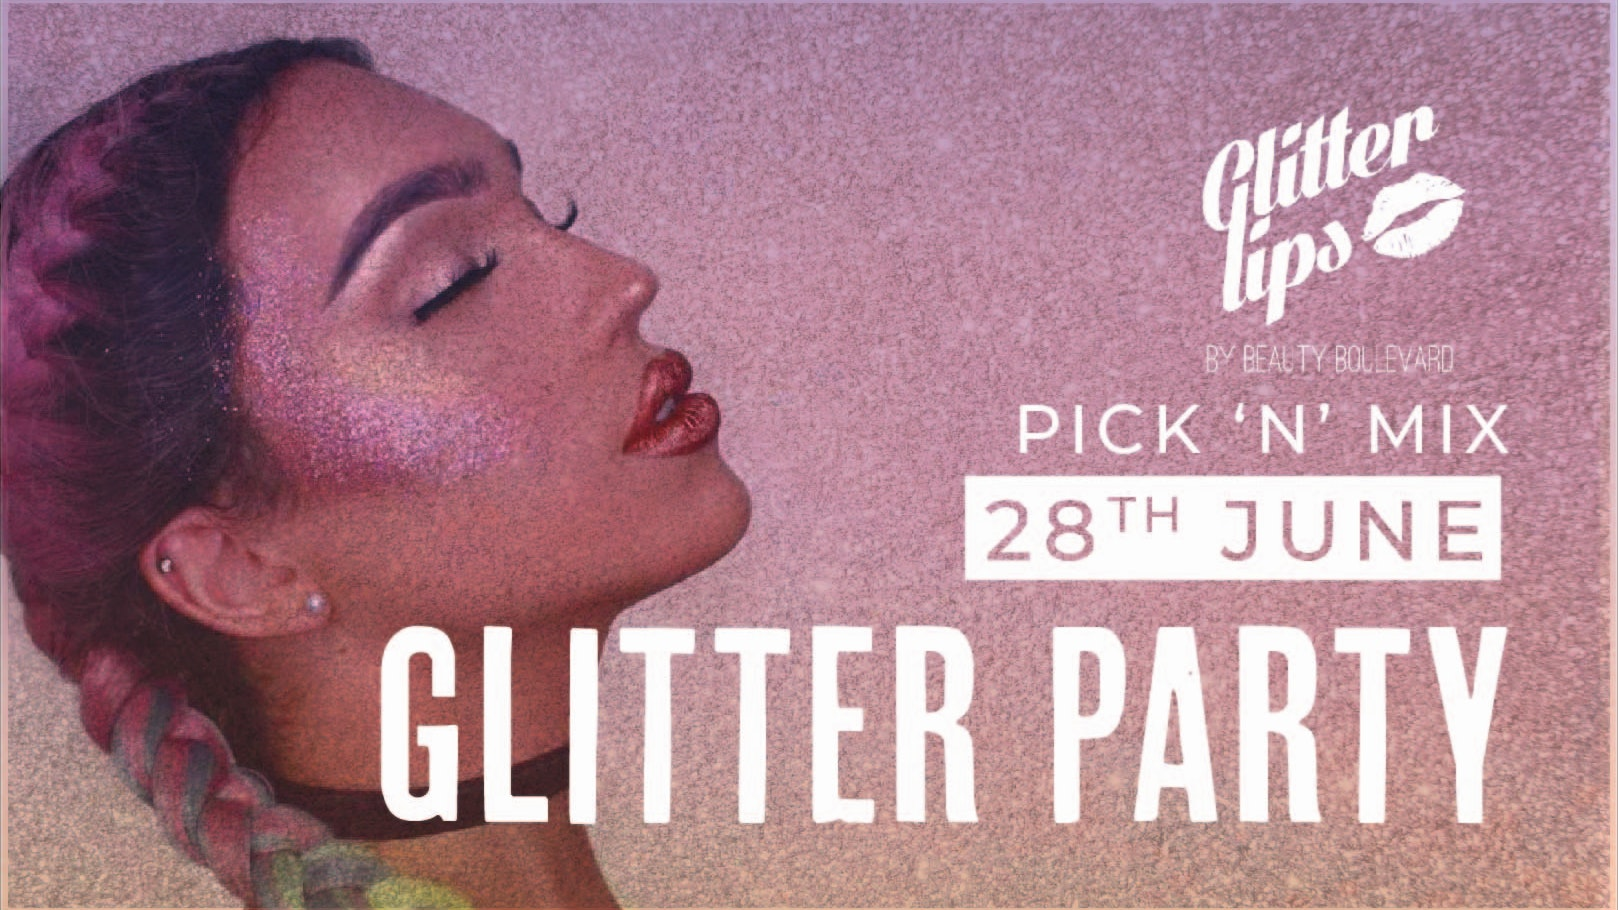 Glitter Party!